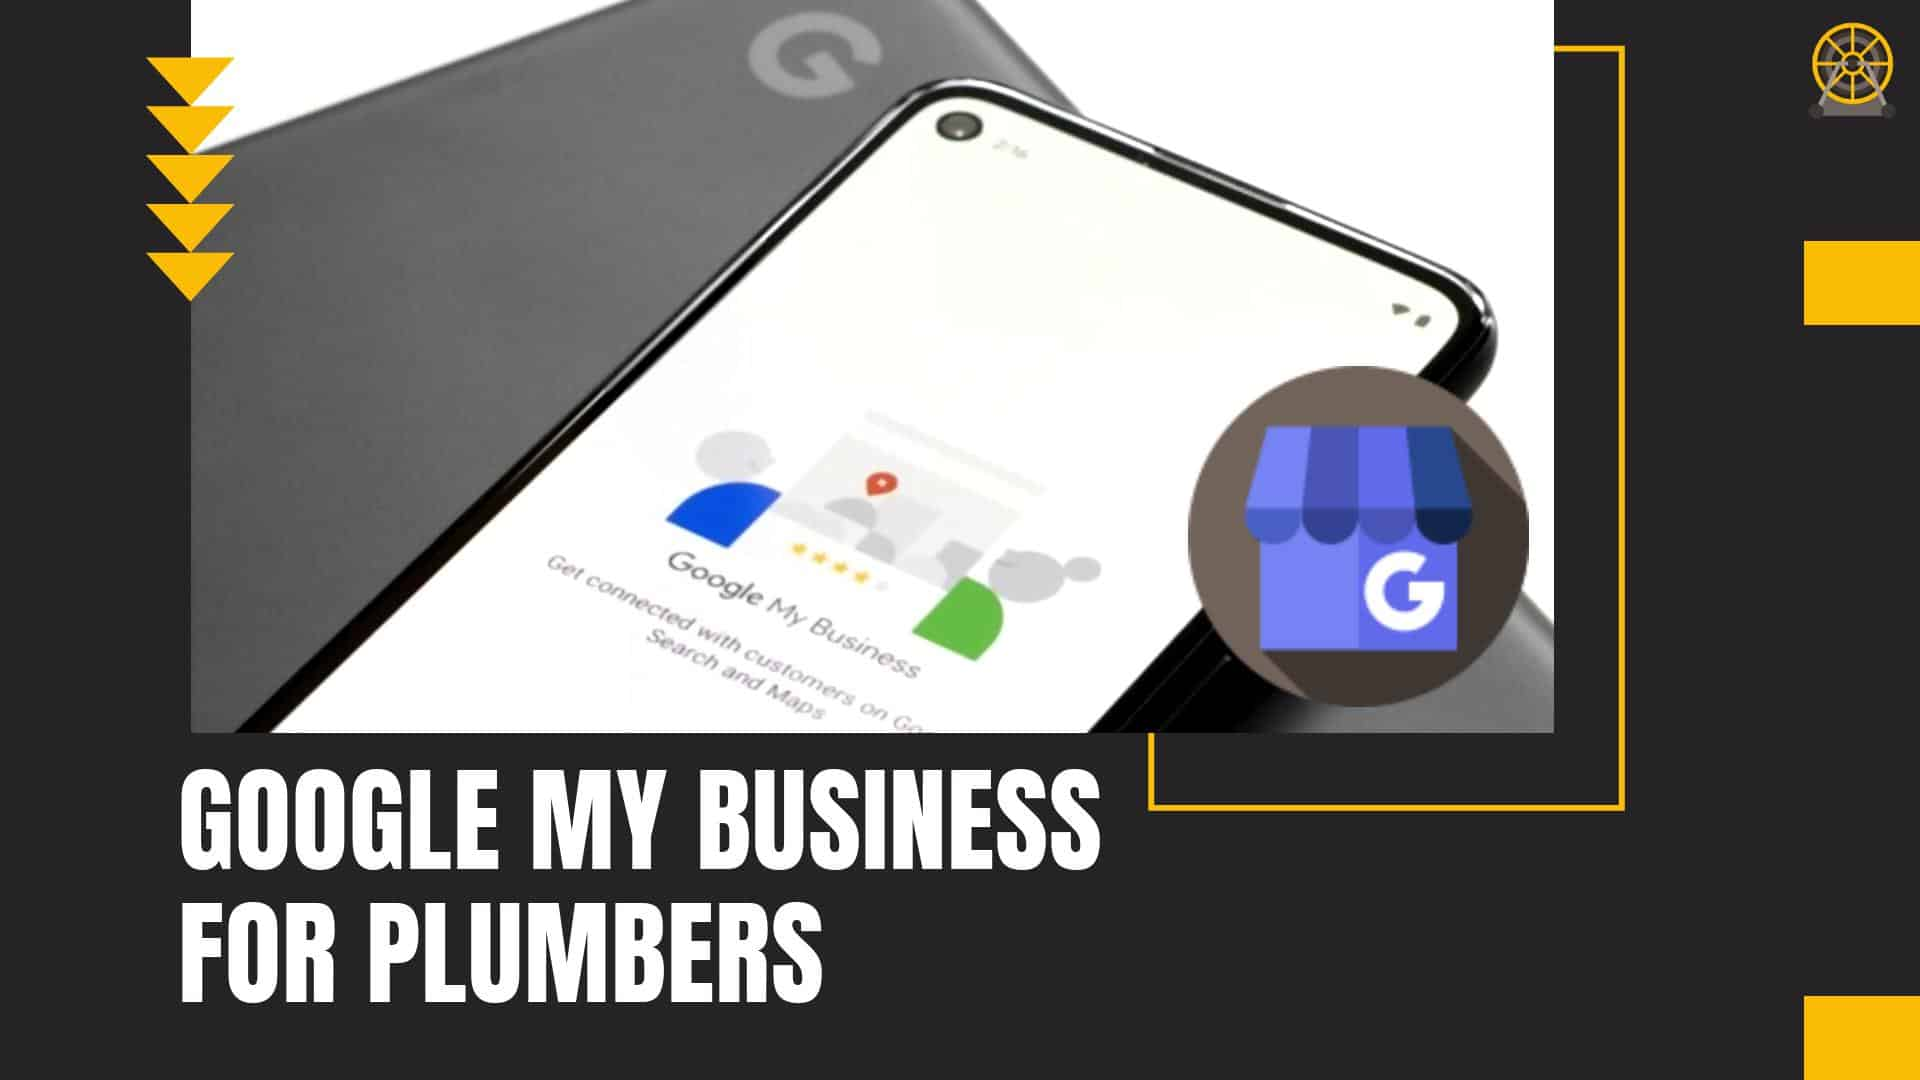 Get more out of your Google My Business profile with Rooter Marketing